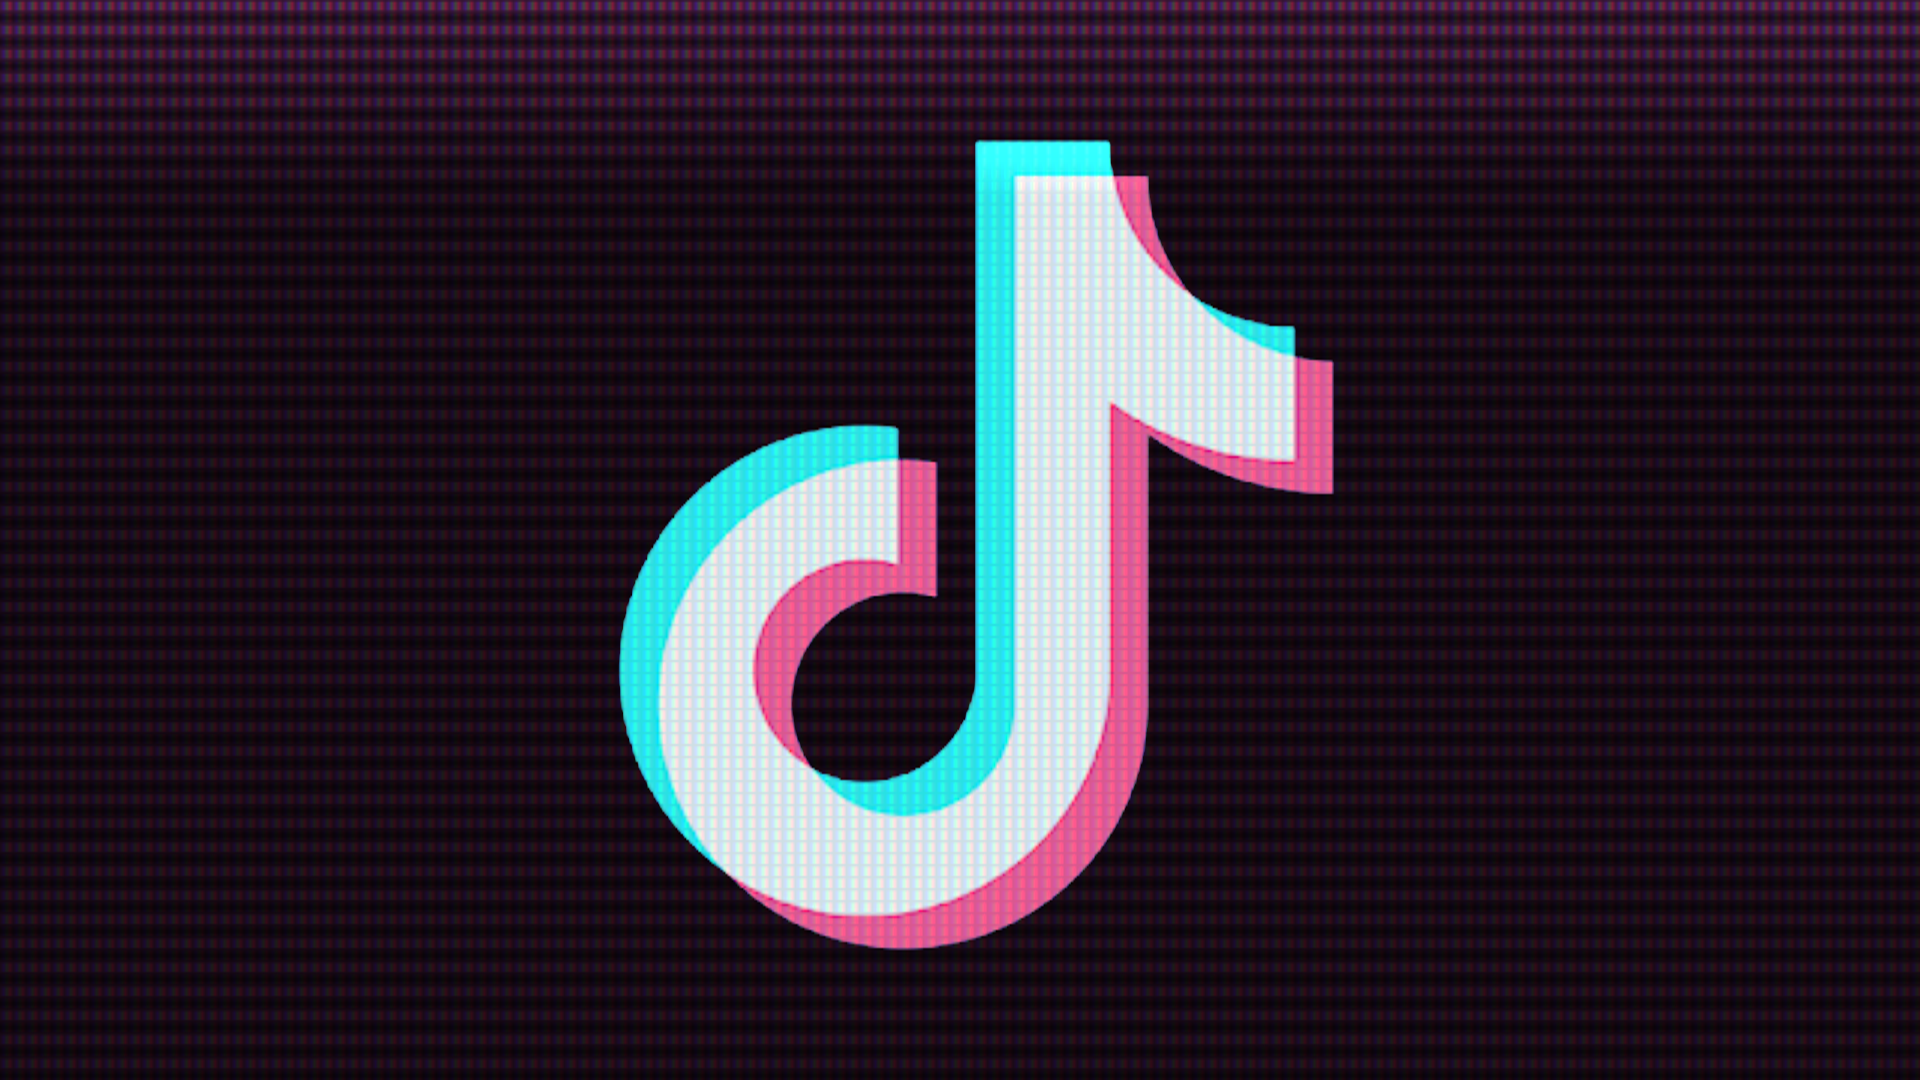 TikTok's Play Store rating back up to 4+ stars after Google removed more than 8 million negative reviews thumbnail